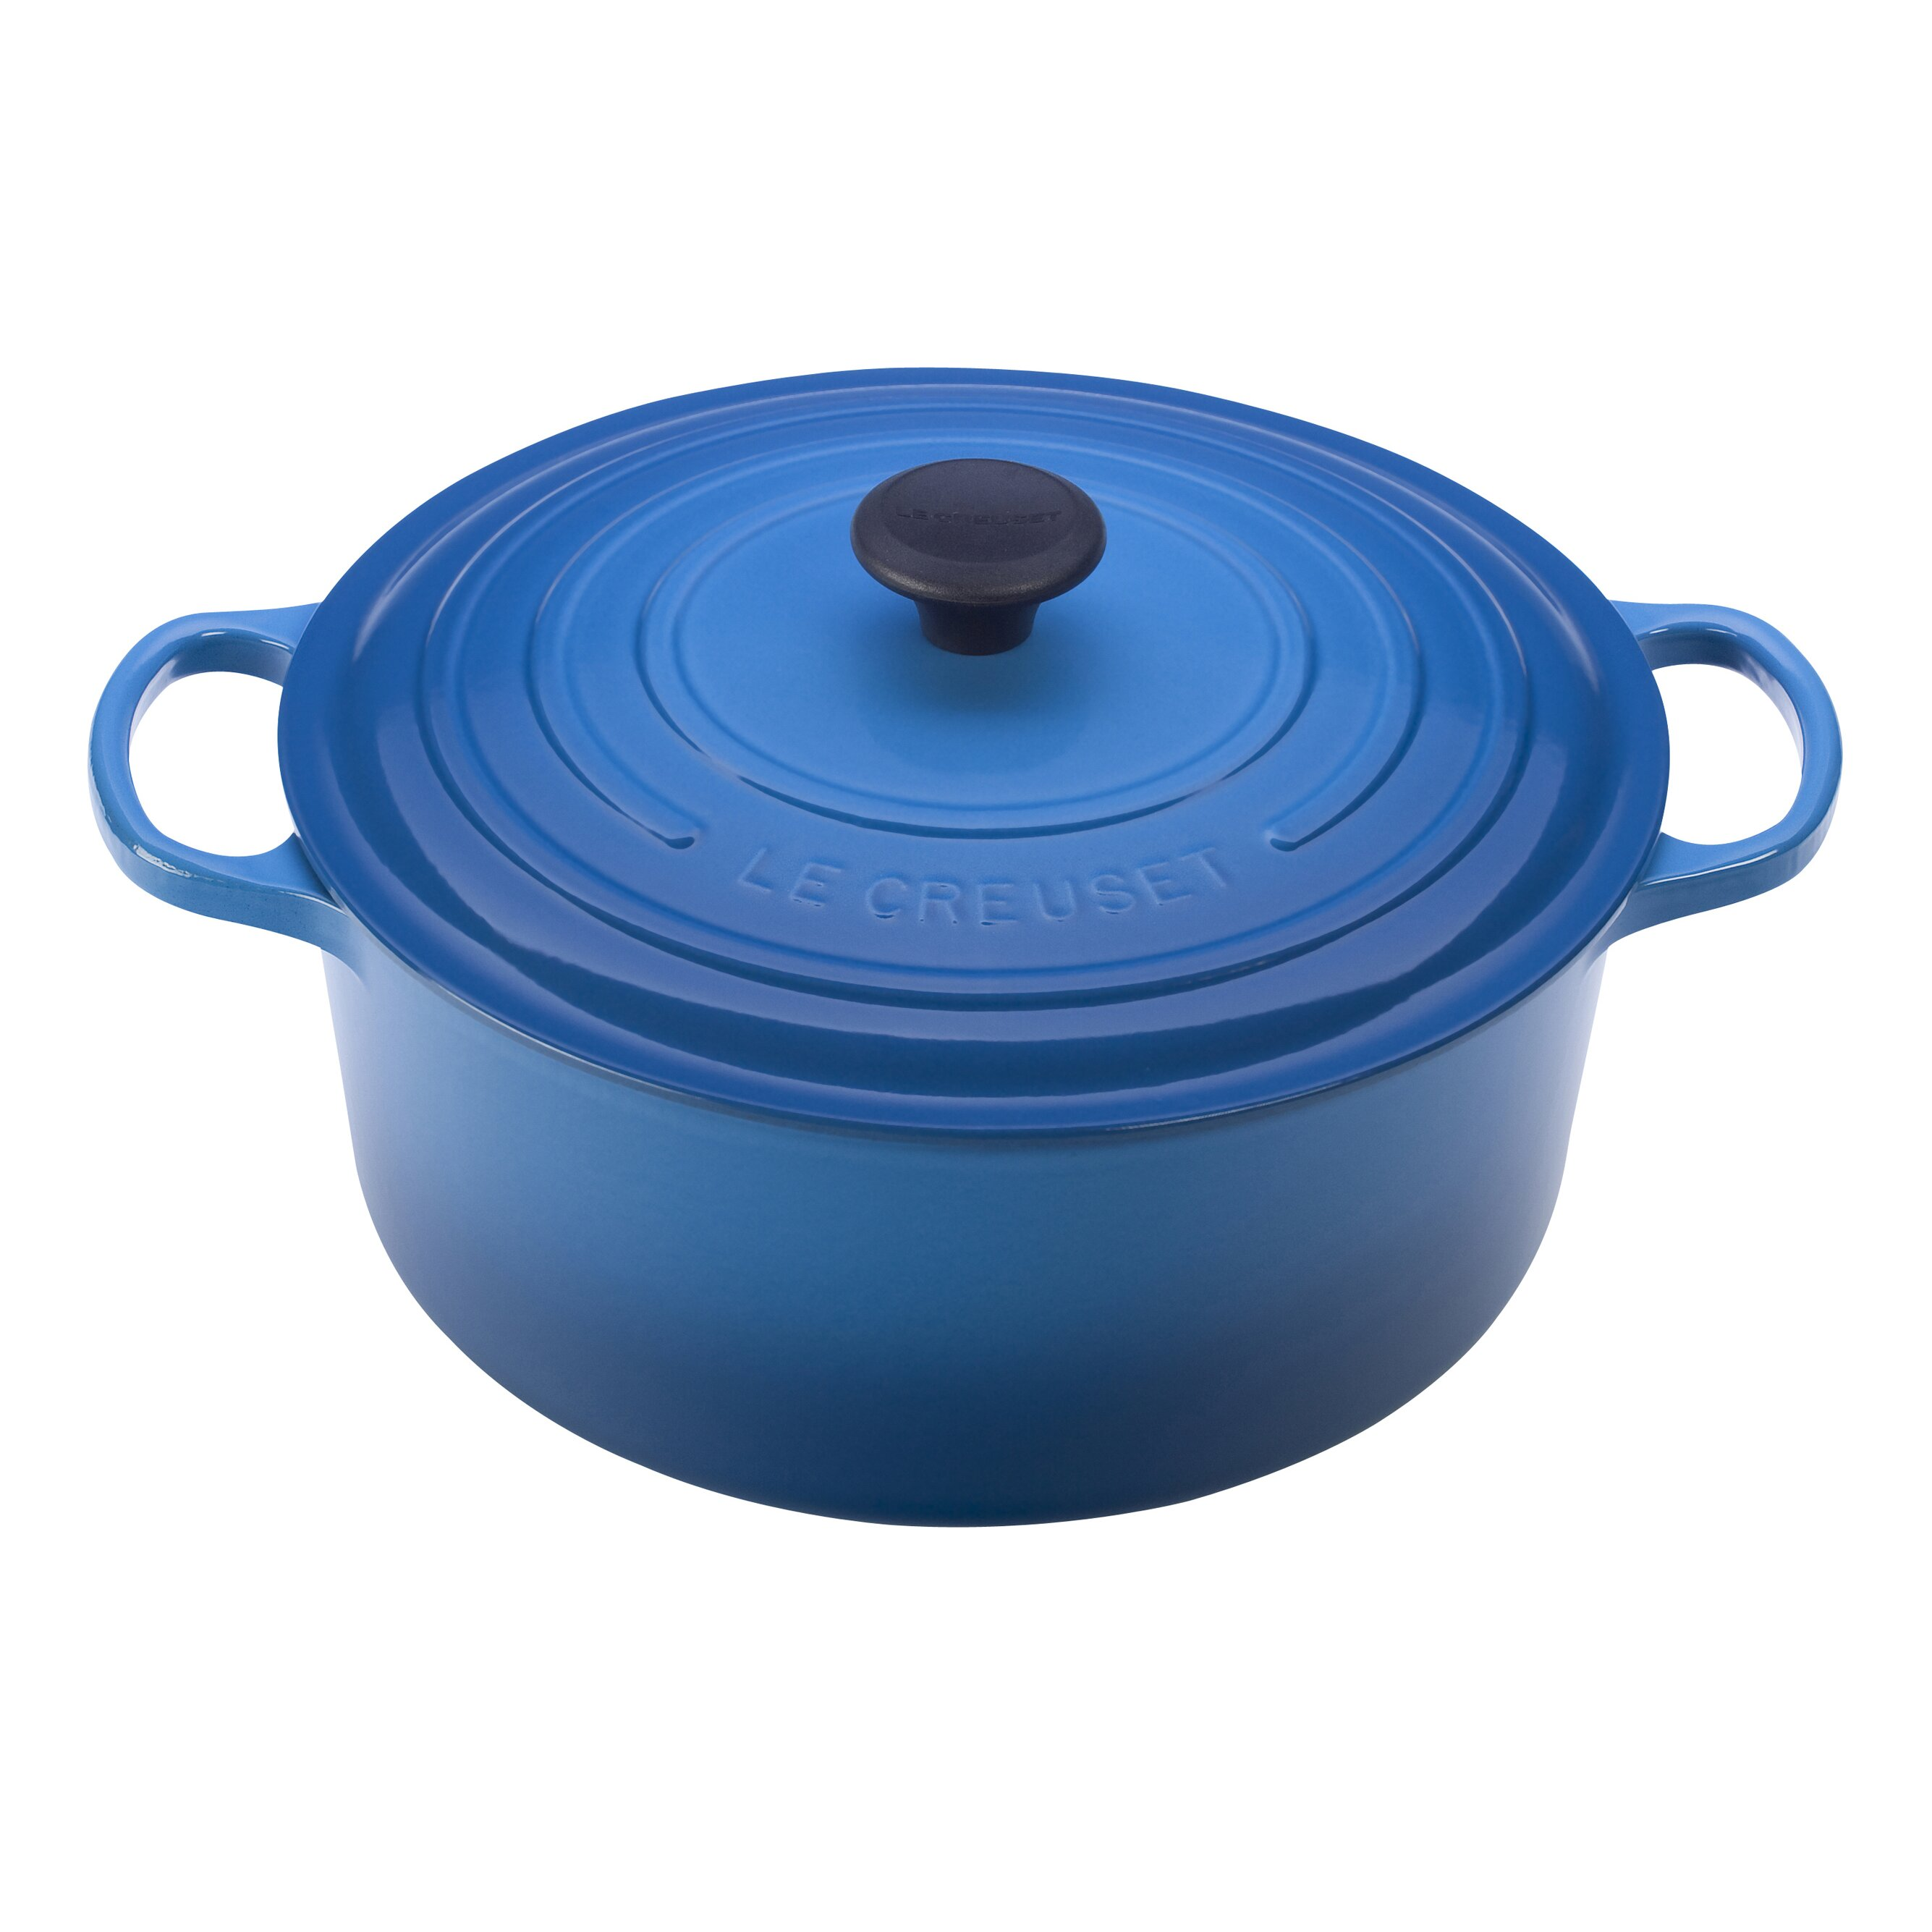 Co color cast cookware - Le Creuset Enameled Cast Iron Round French Oven